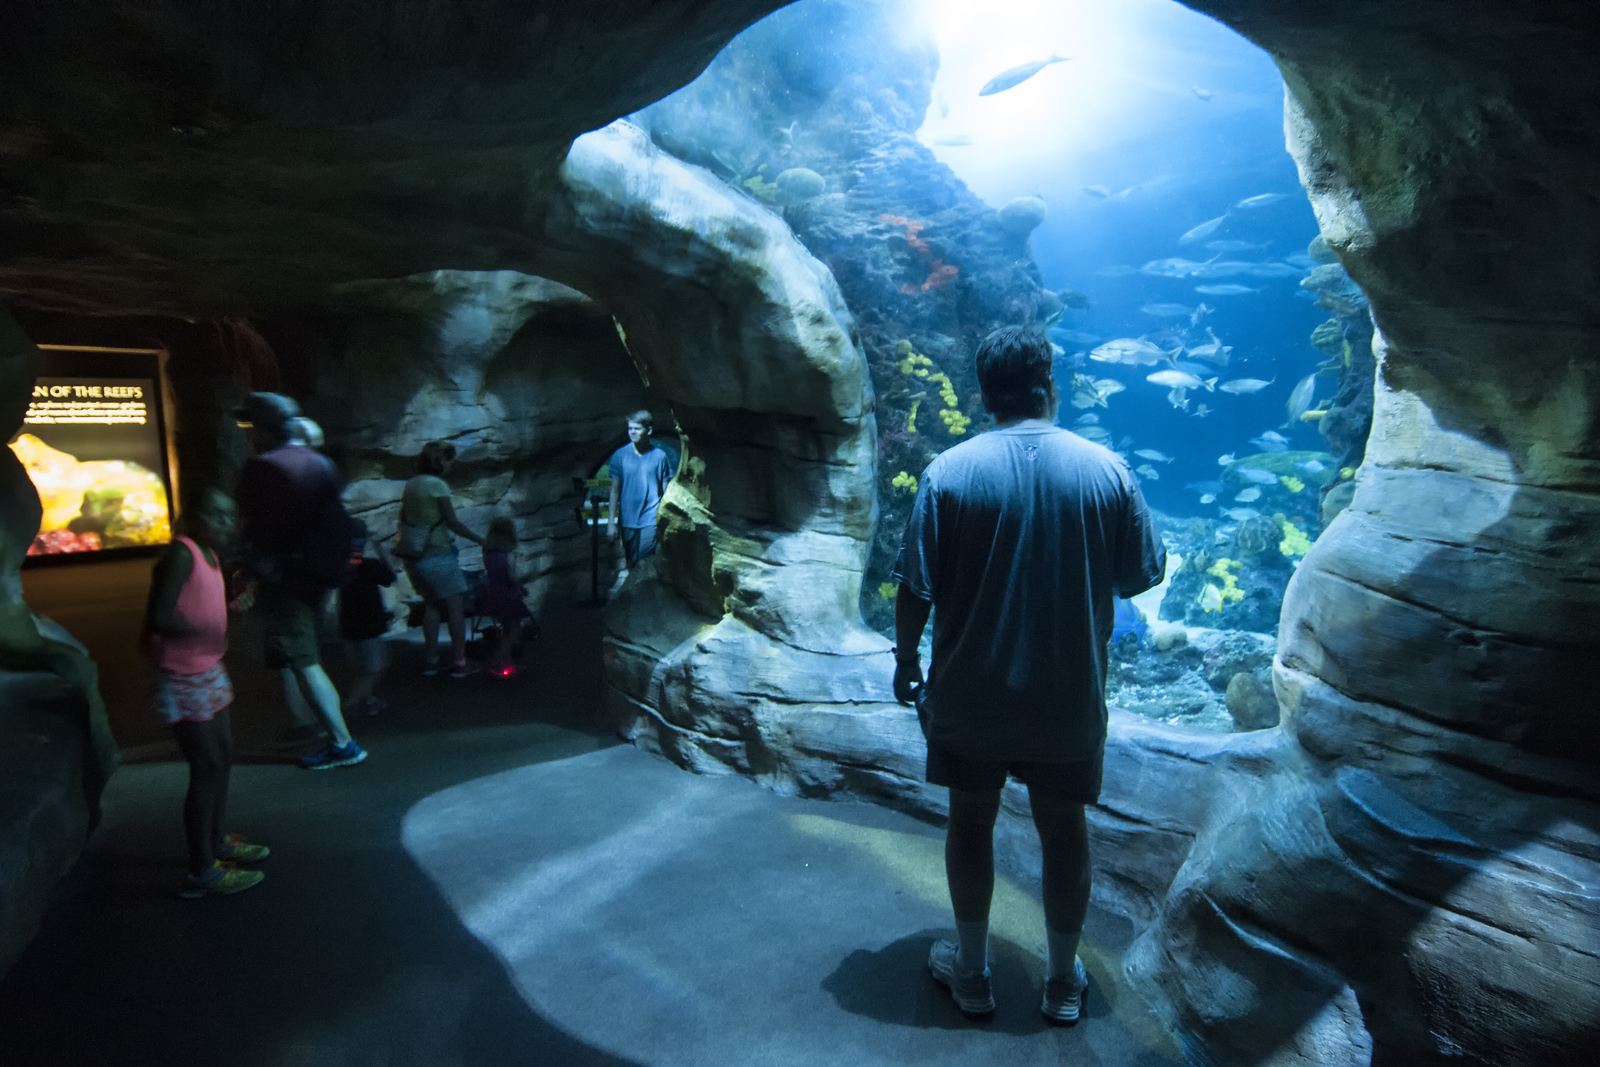 People move through tunnels beneath the fish tank inside the Ocean Journey building at the Tennessee Aquarium in Chattanooga, TN on Friday, July 17, 2015. Copyright 2015 Jason Barnette Photos of the Tennessee Aquarium are available for licensing for editorial use in newspapers and magazines, however these photos are not available for print sales.